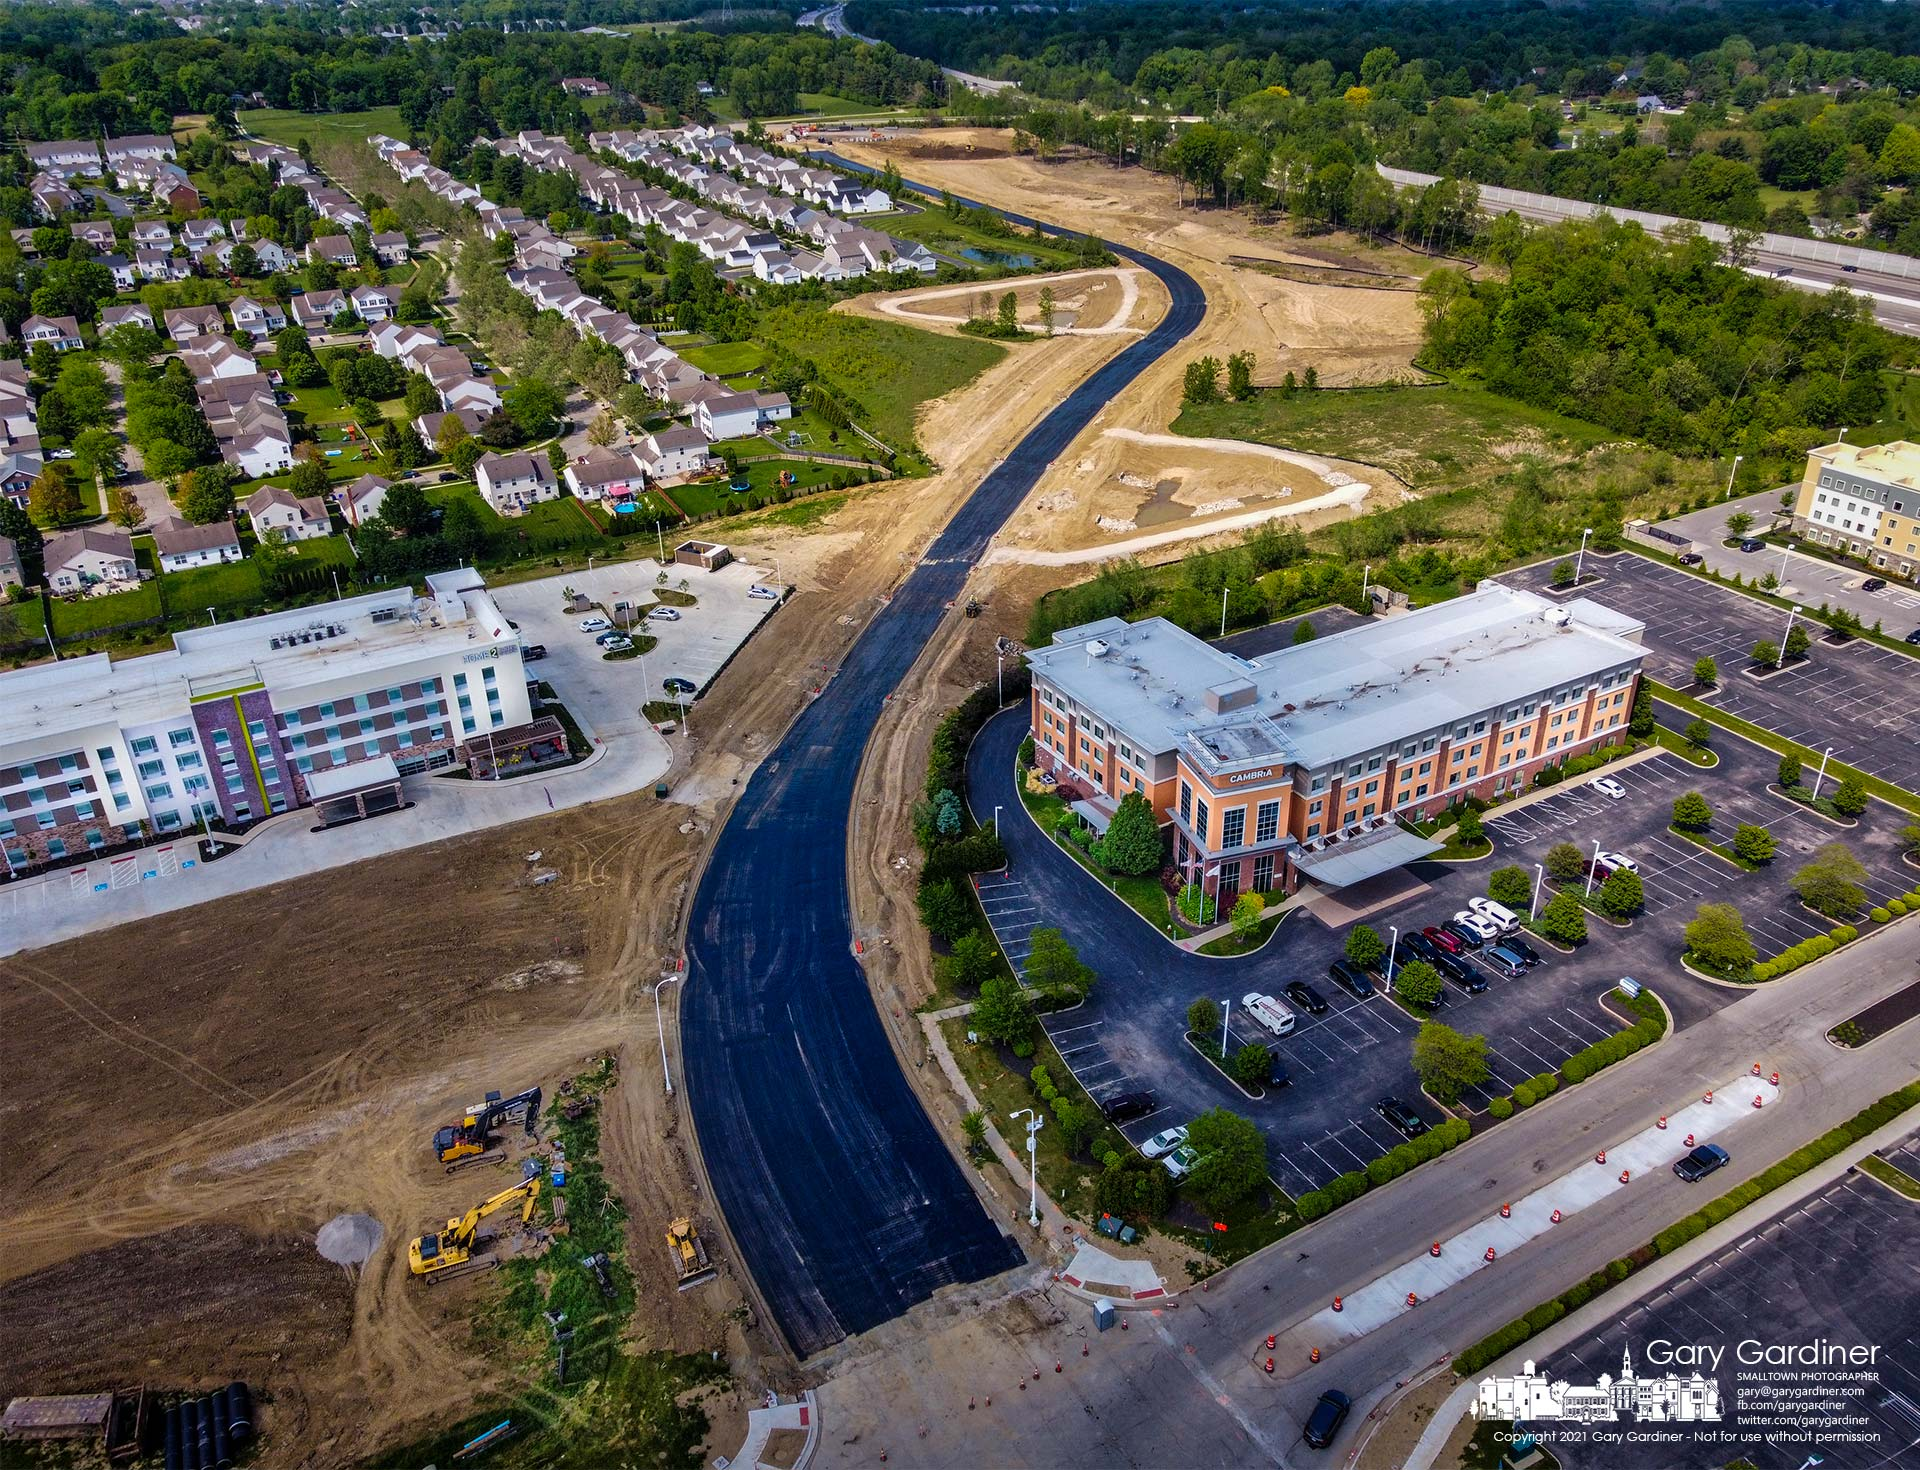 The new extension of Lyra Drive from Gemini Place to East Powell Road is nearing completion creating a connector to Powell Road from Polaris mall. My Final Photo for May 19, 2021.